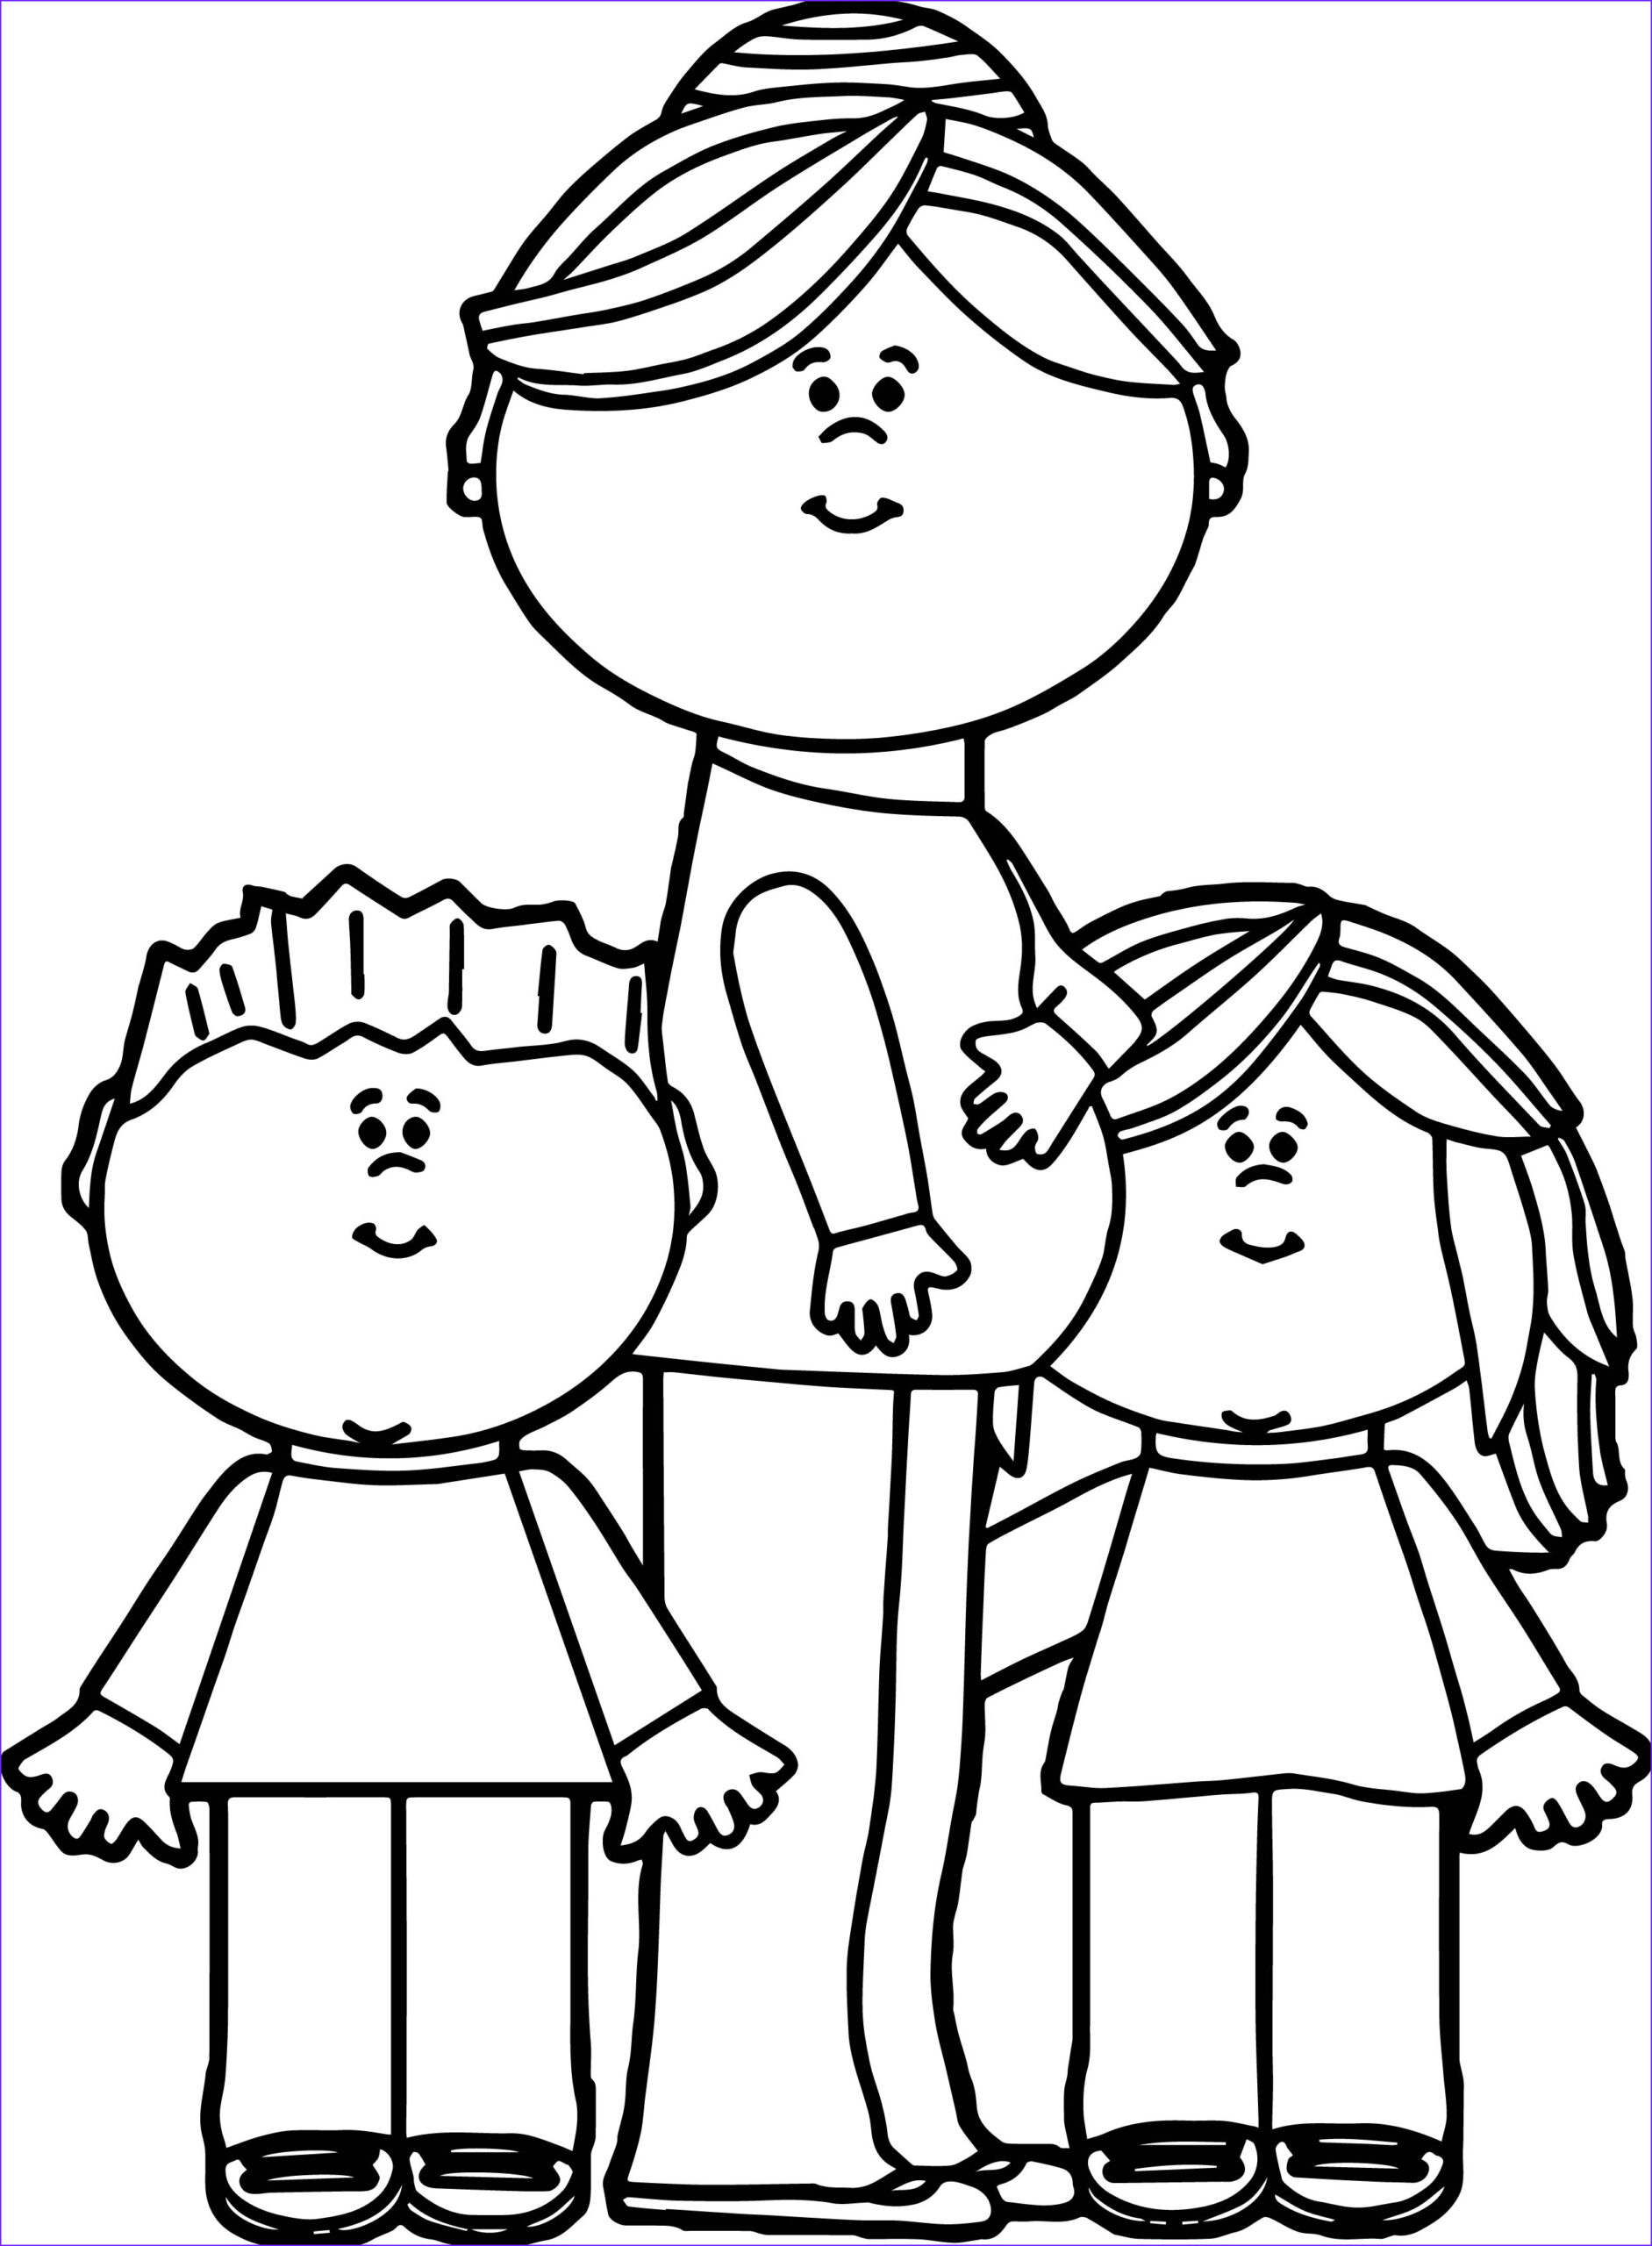 Mum Coloring Page Beautiful Stock Mom Coloring Pages Coloringsuite